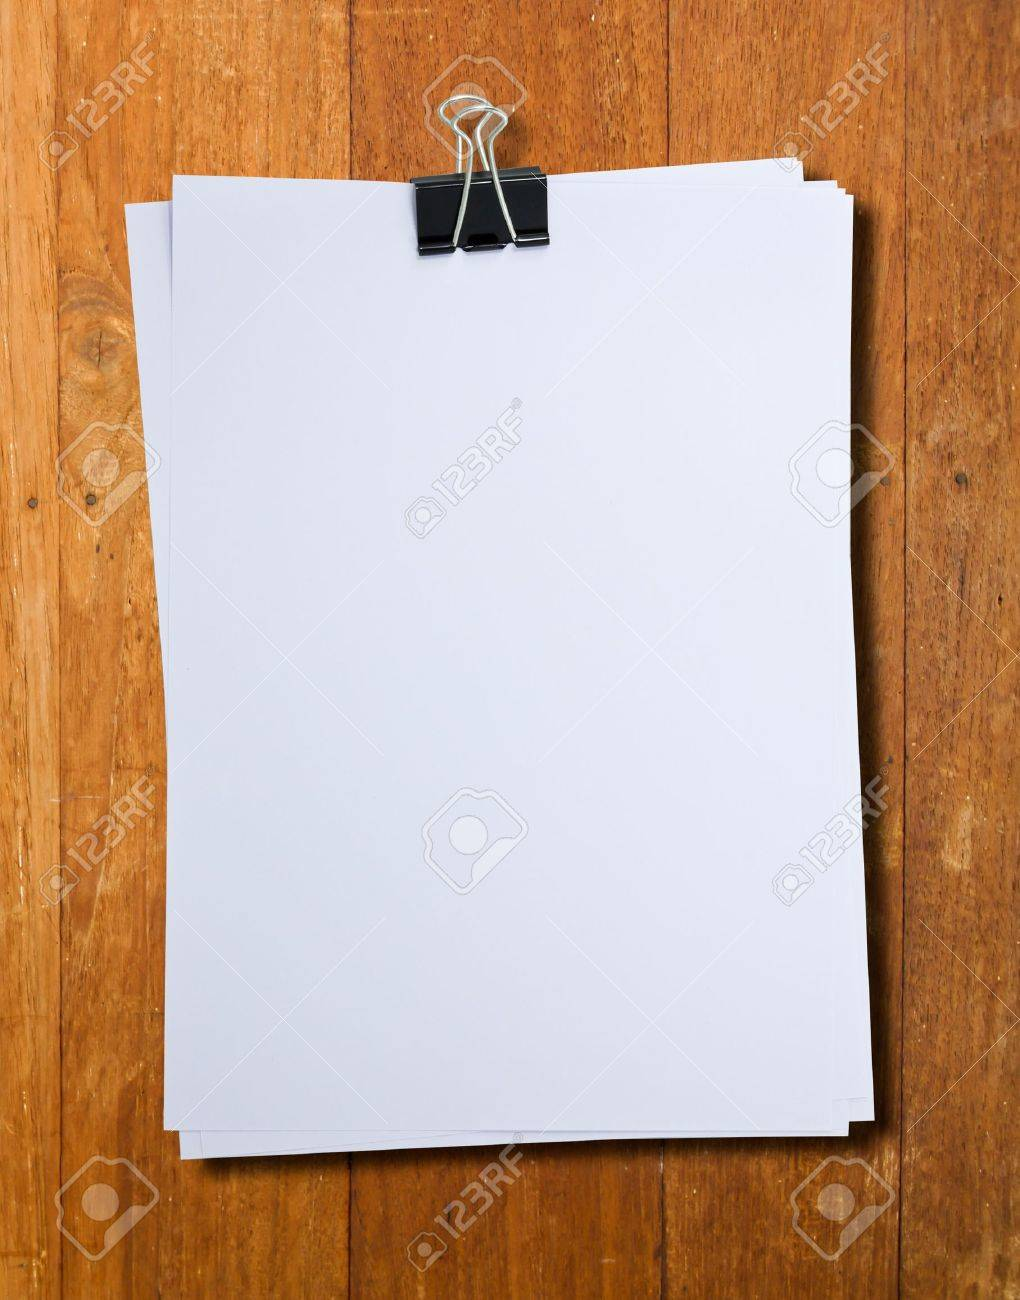 binder clip and stack of paper stock photo, picture and royalty free